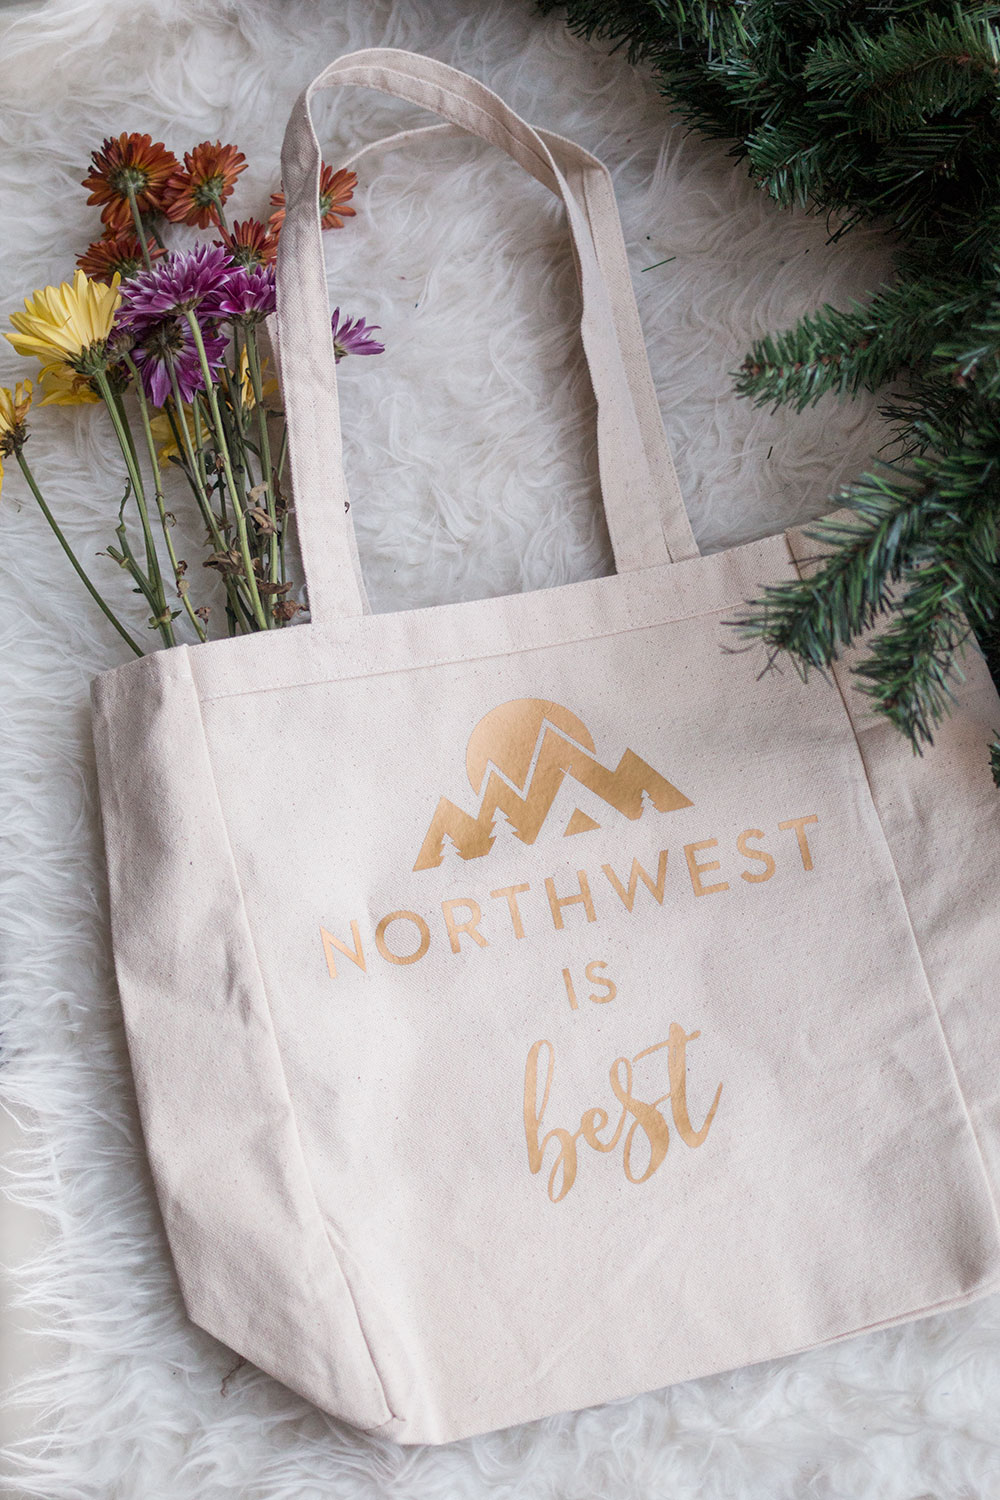 Songbird Paperie Northwest is Best Tote // Hello Rigby Seattle Fashion Blog